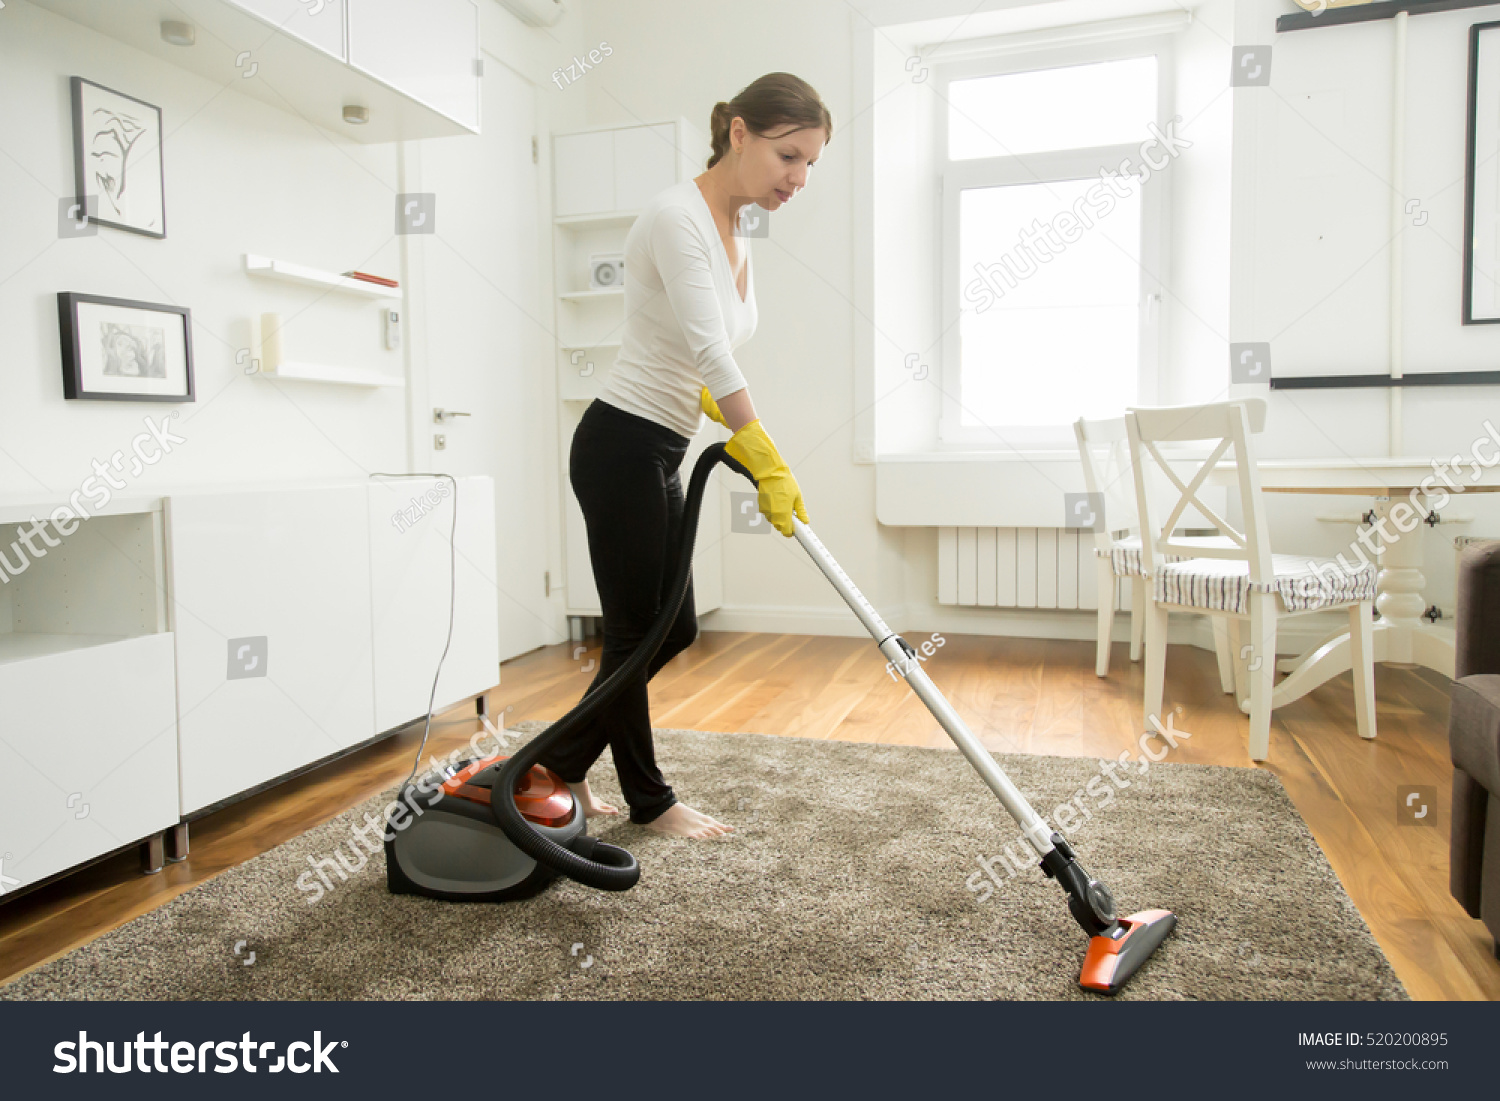 Woman casual wear vacuum cleaning carpet stock photo for Modern cleaning concept